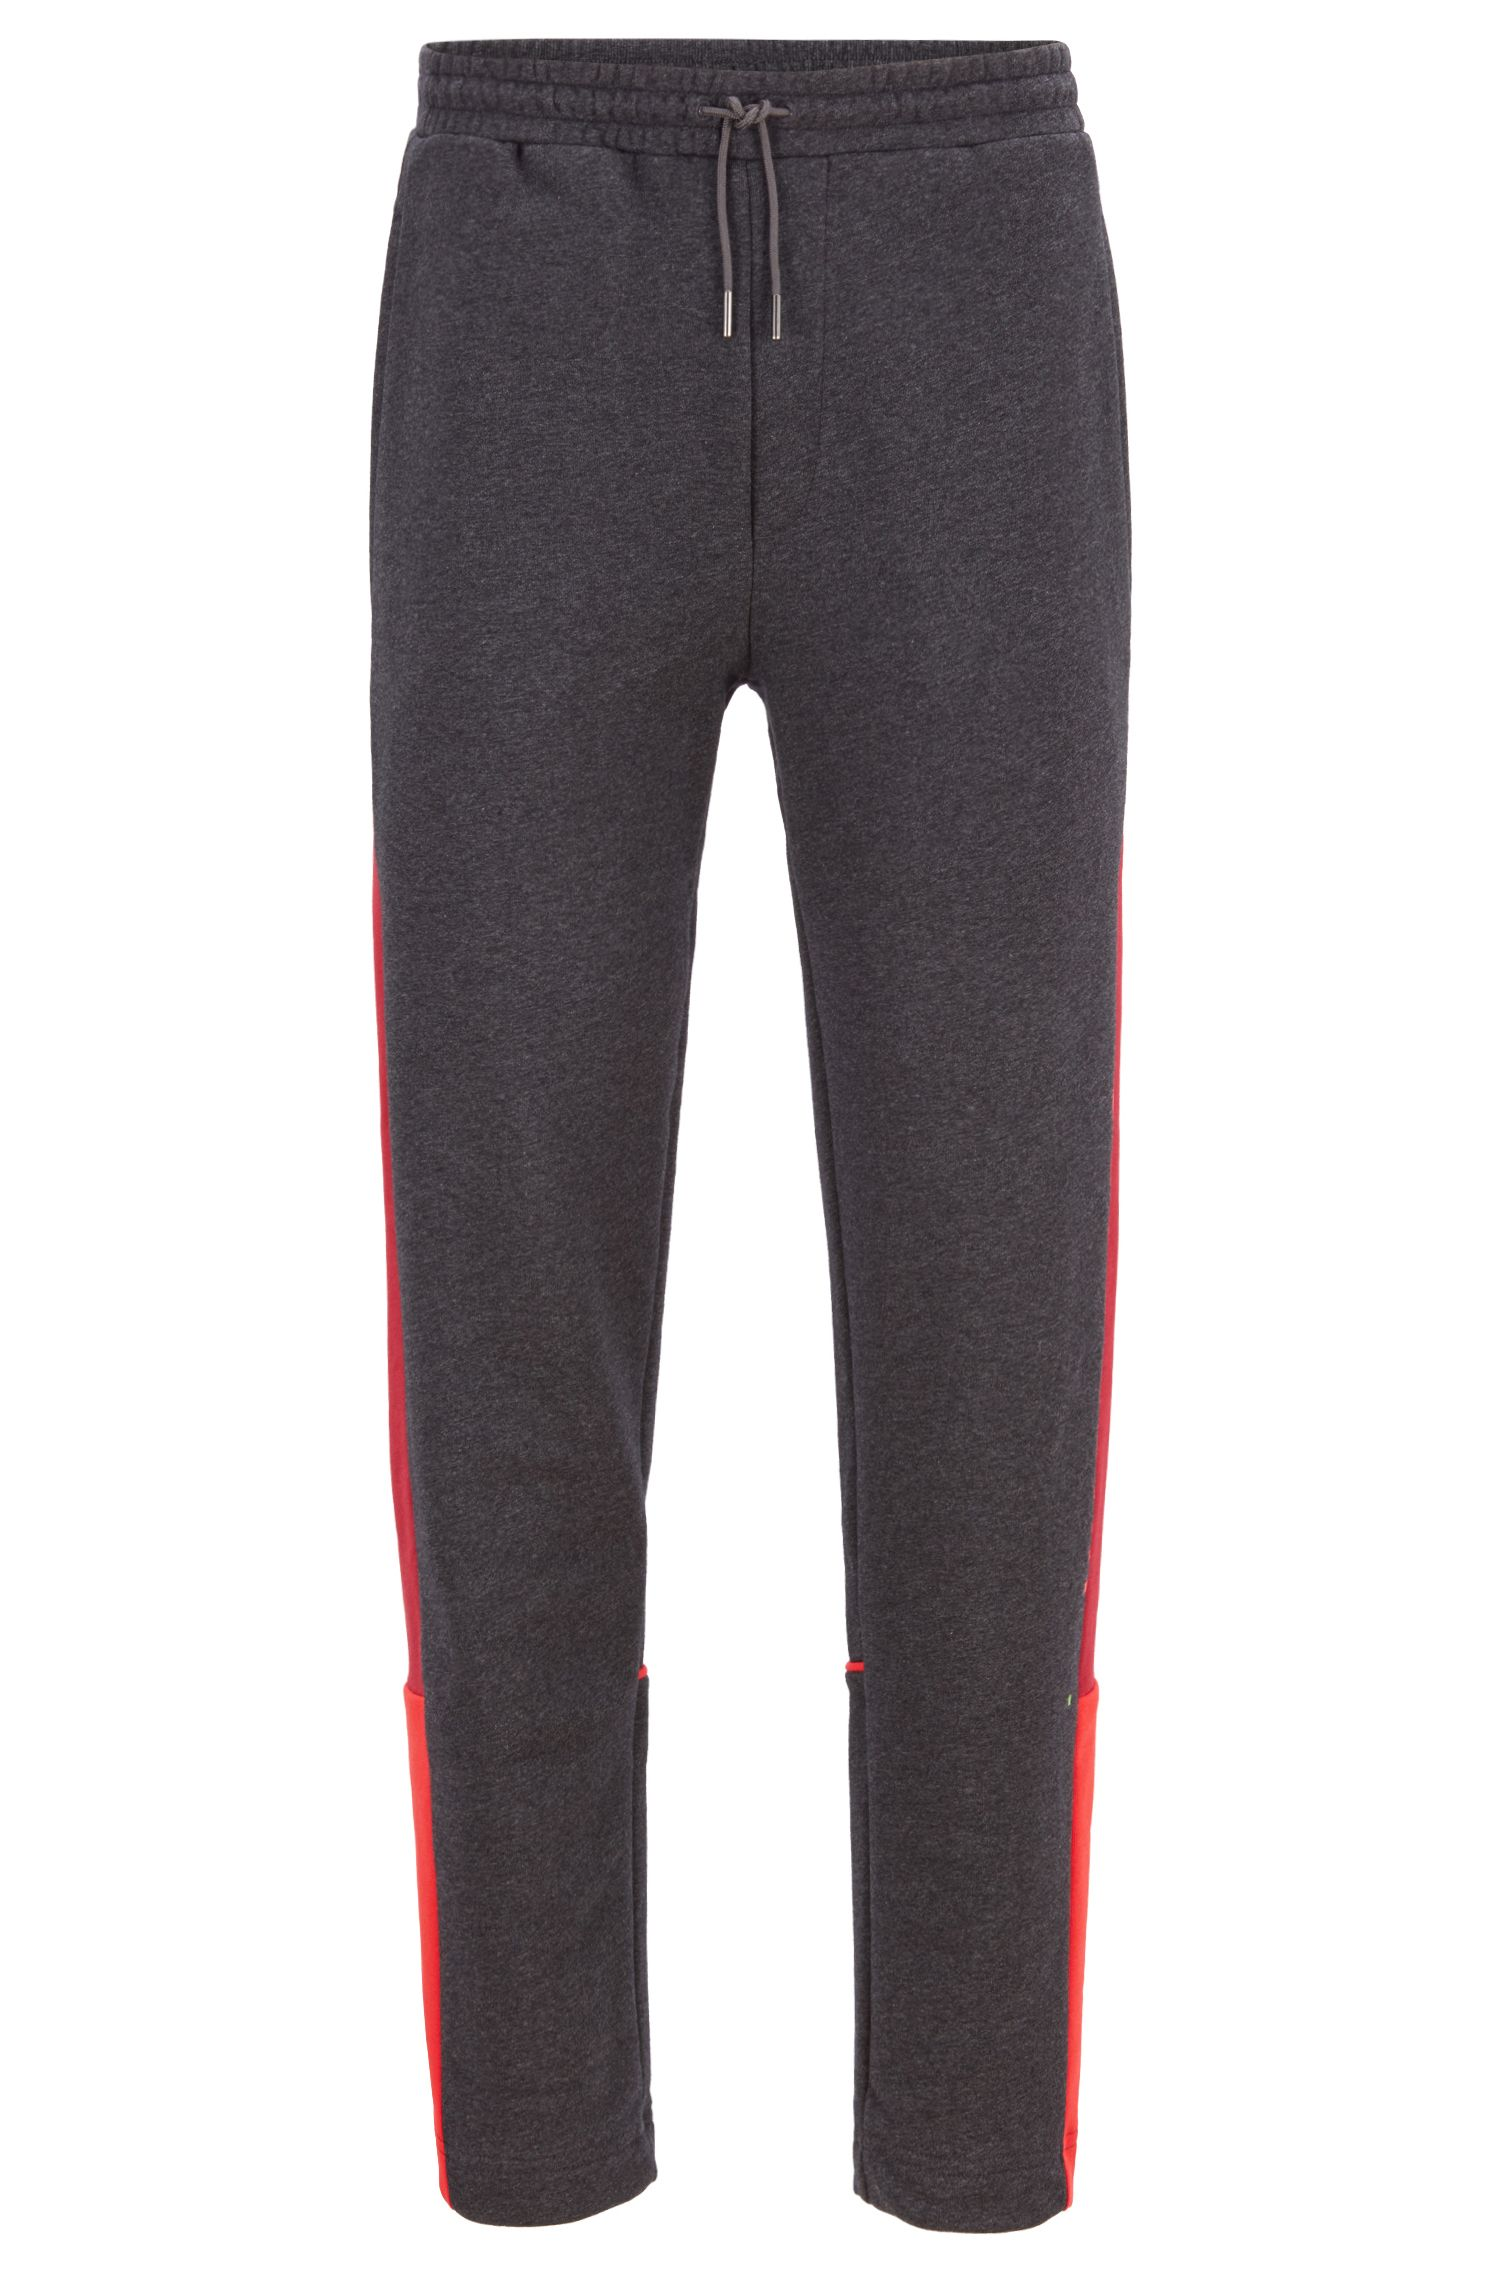 Pantaloni da jogging a blocchi di colore in french terry, Grigio antracite